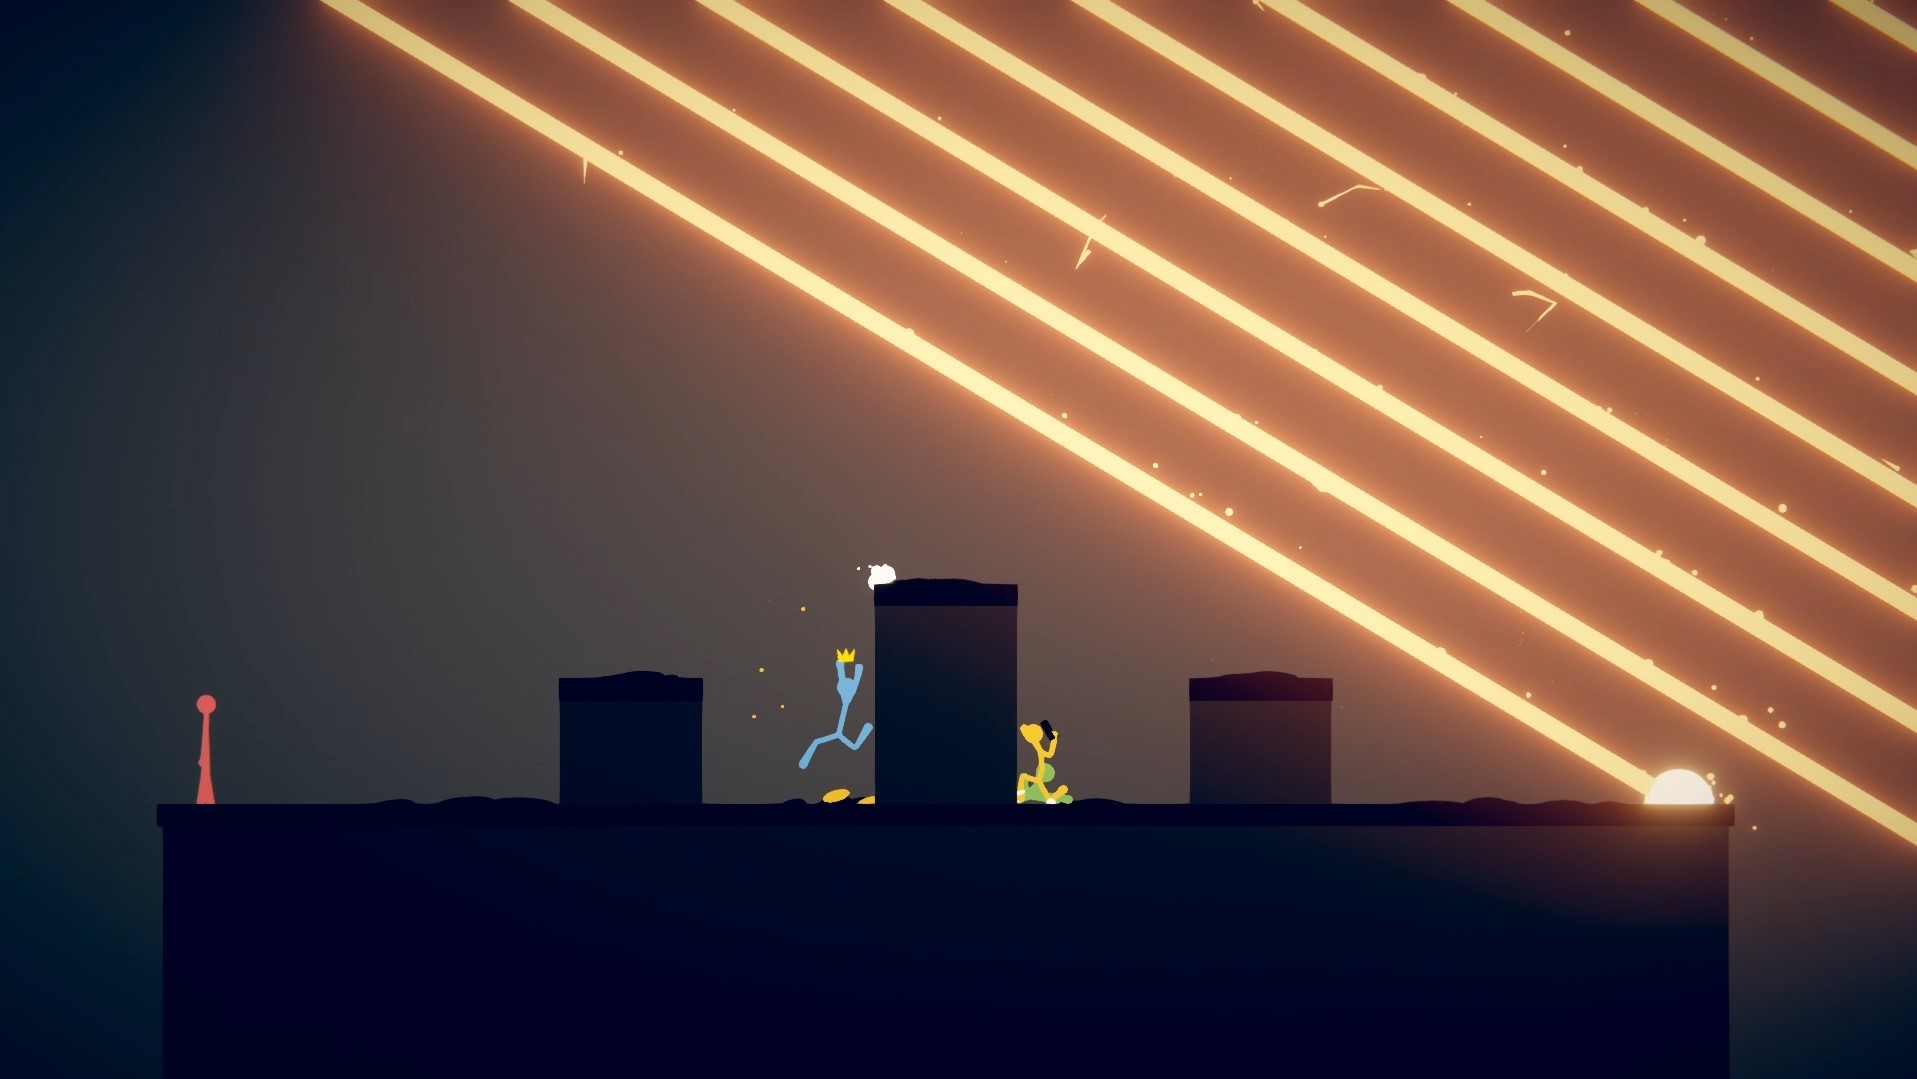 Save 25 On Stick Fight The Game On Steam